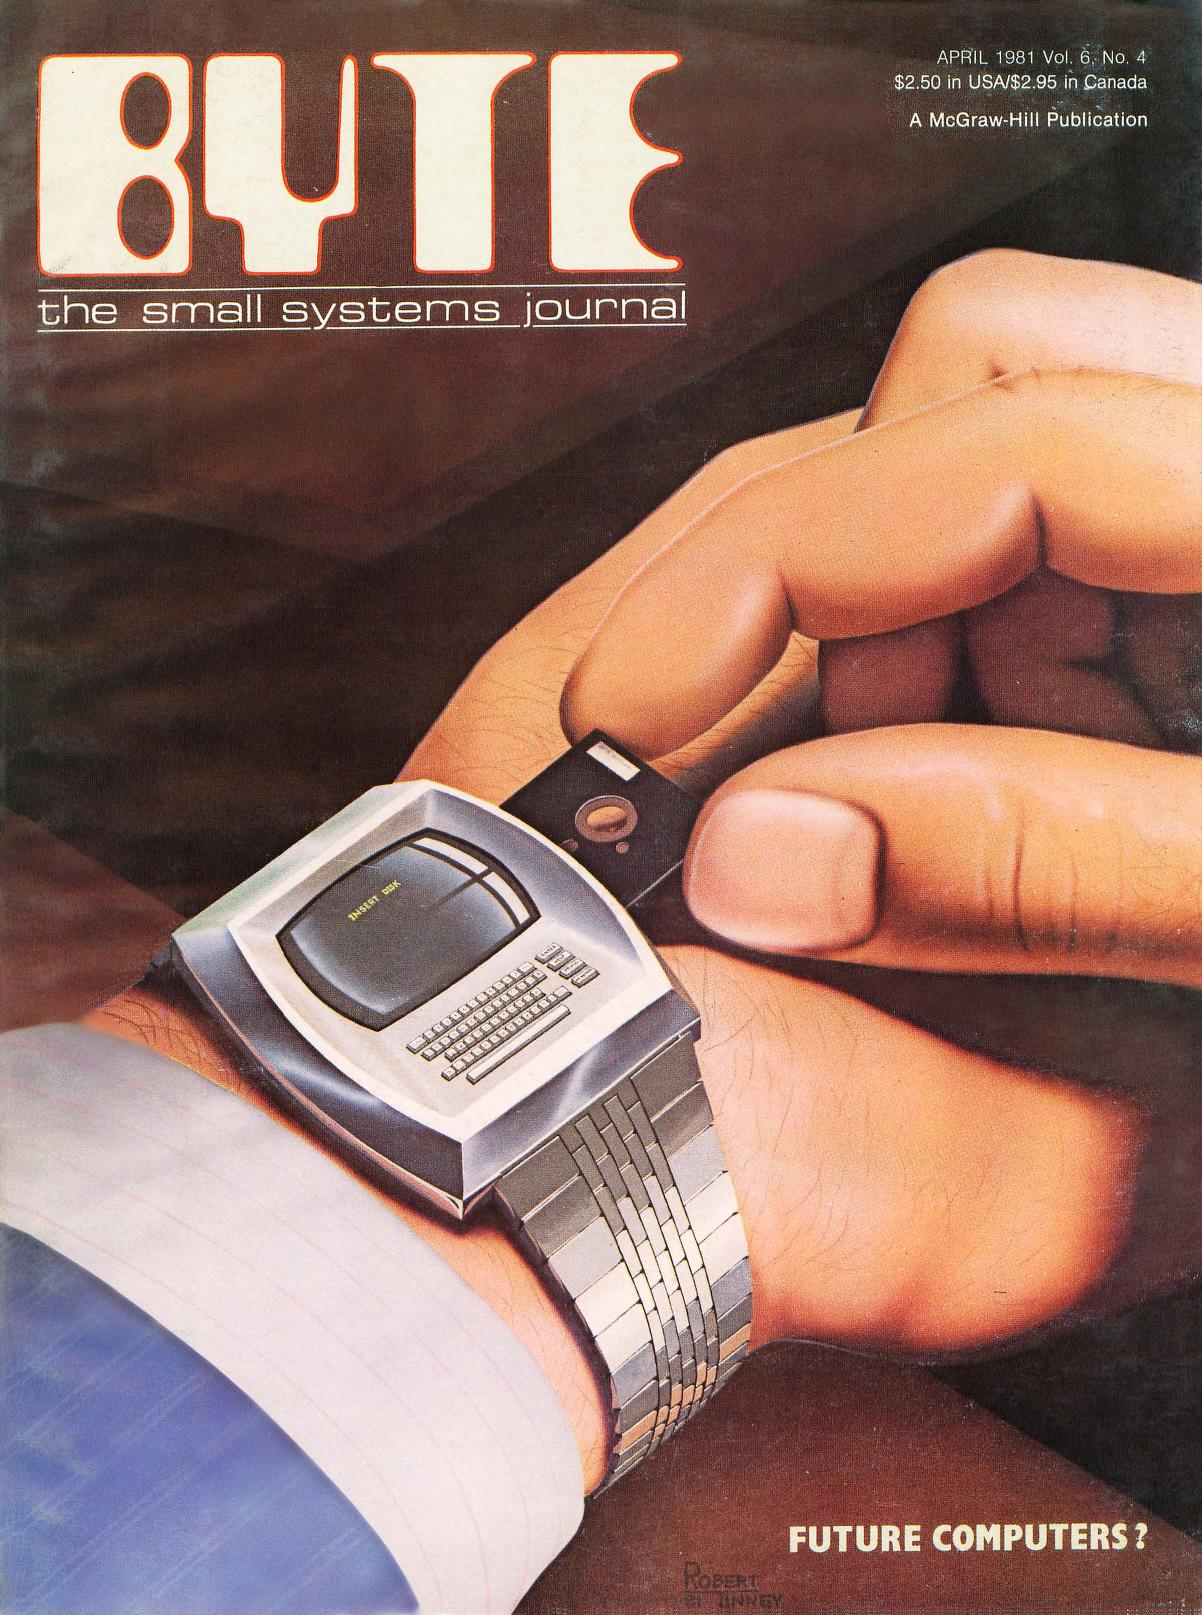 retro-wearable-devices